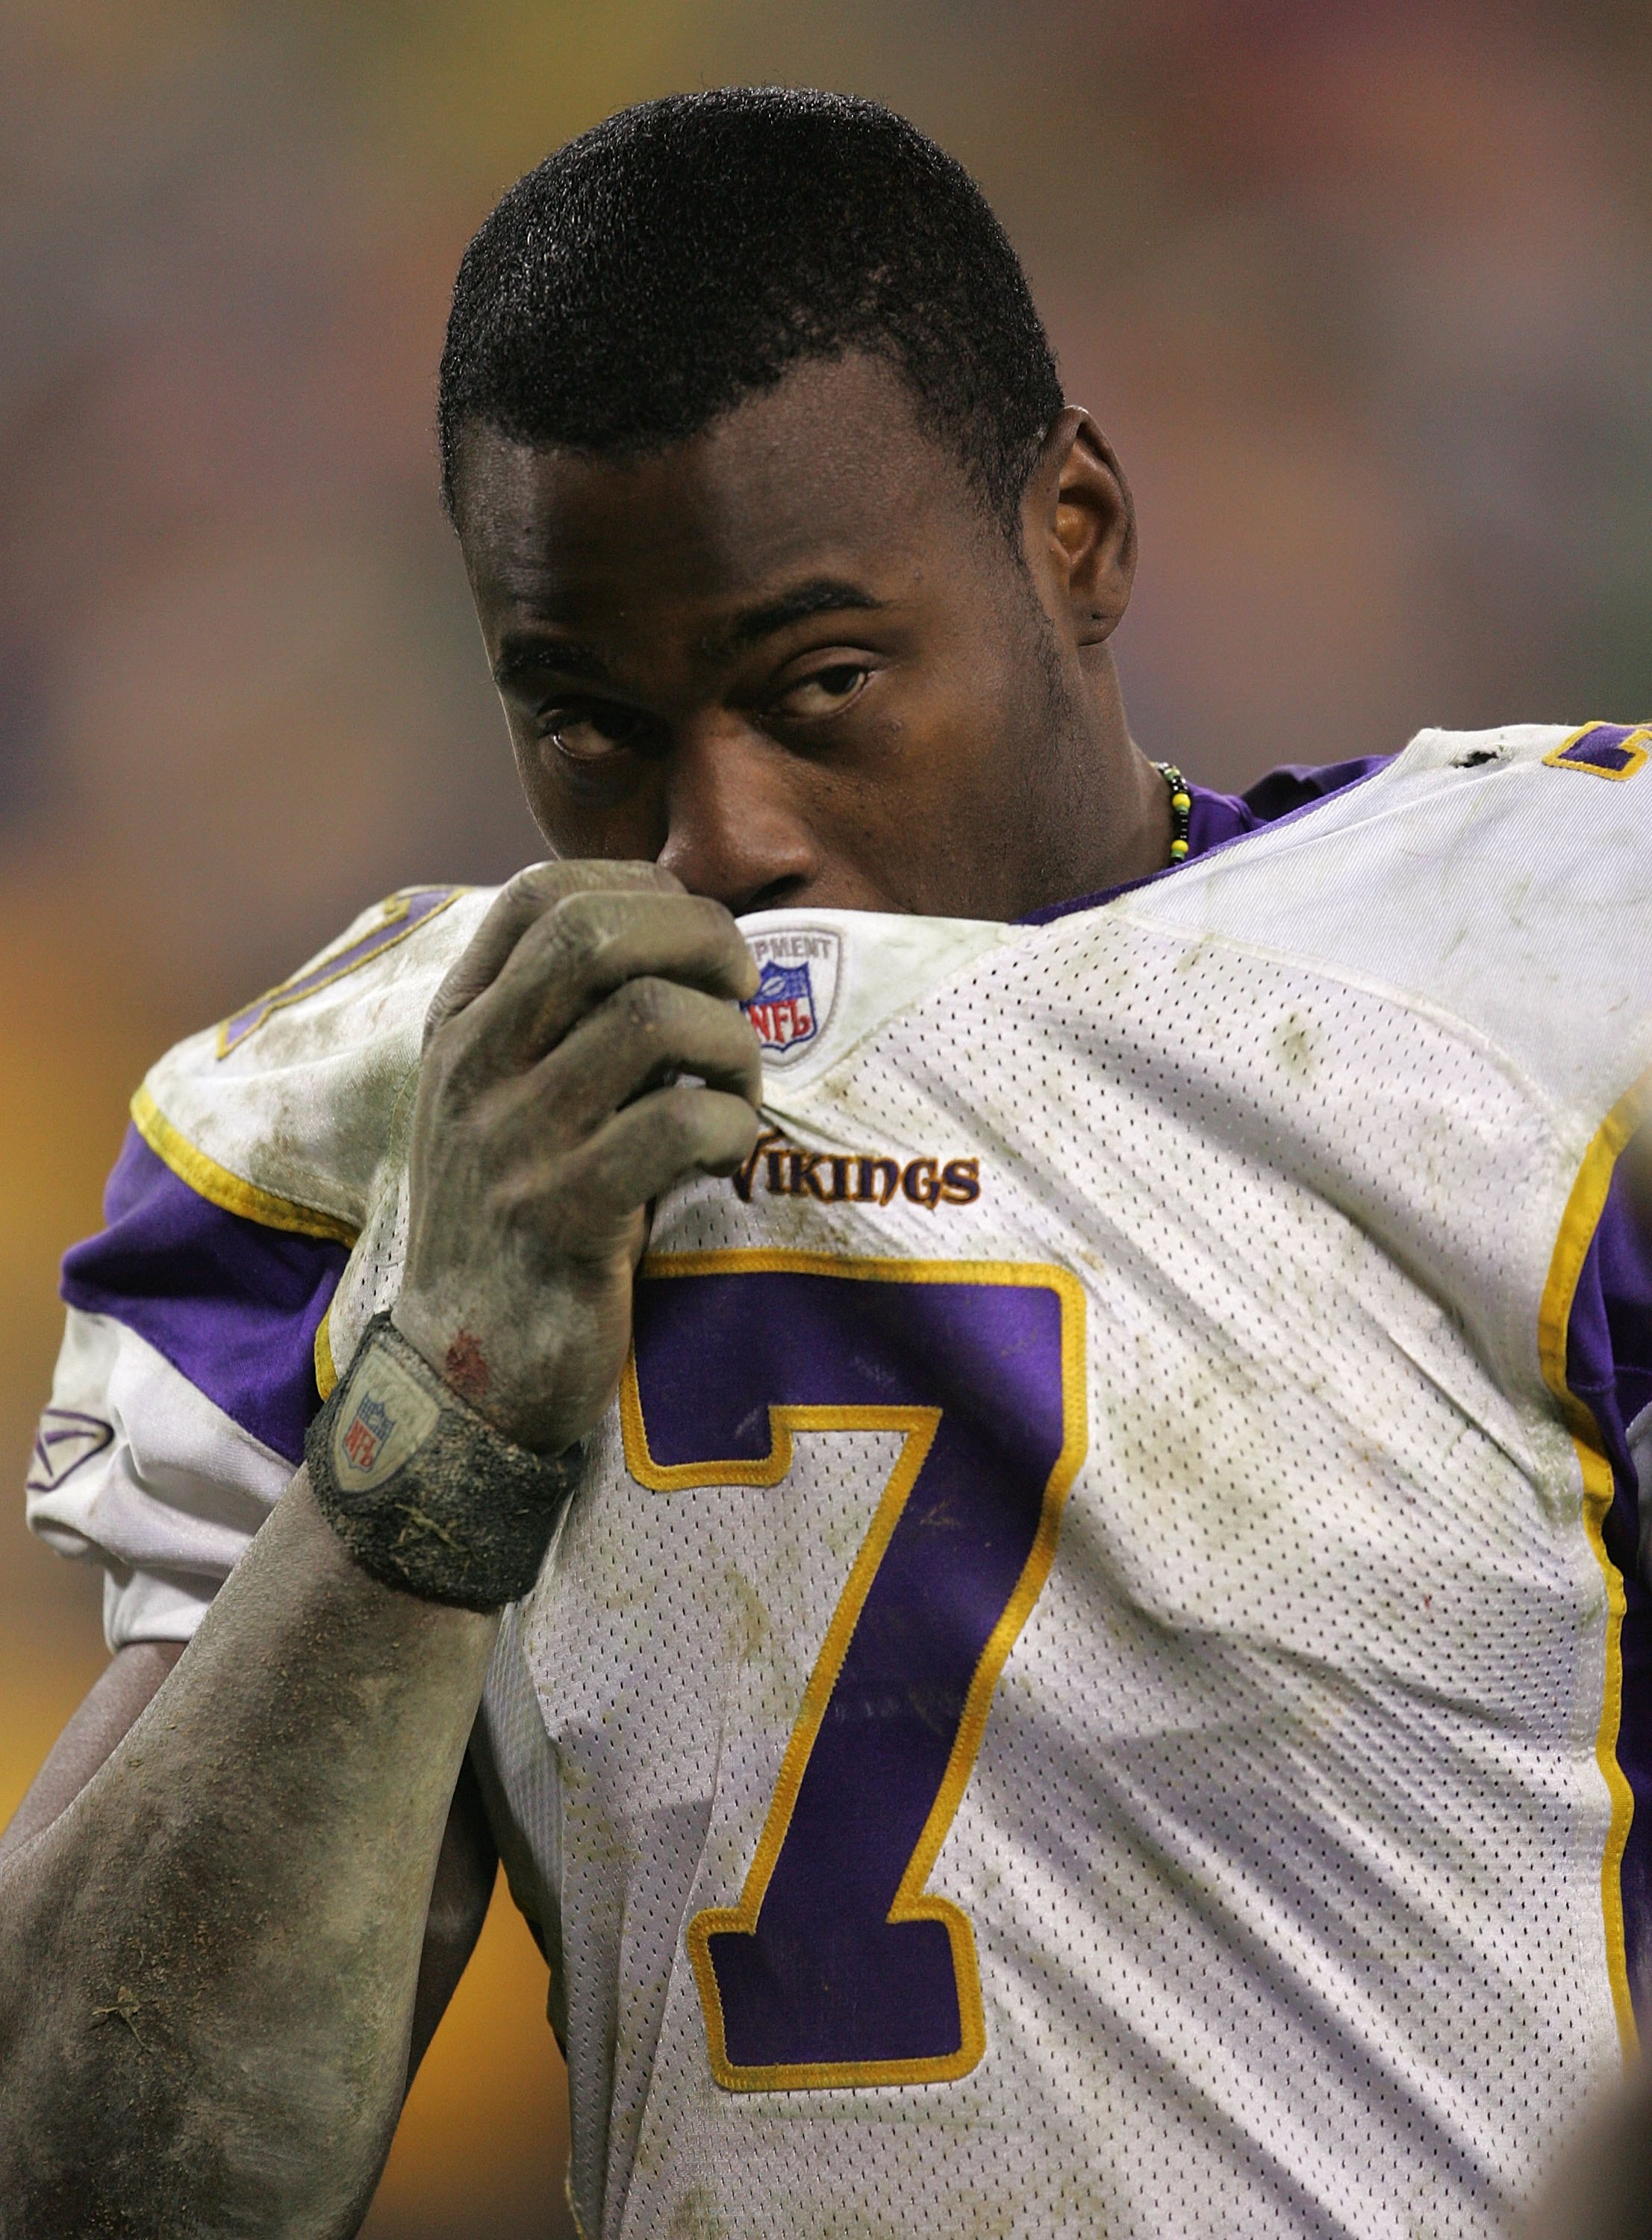 GREEN BAY, WI - DECEMBER 21:  Tarvaris Jackson #7 of the Minnesota Vikings walks off the field following a loss in his first start to the Green Bay Packers on December 21, 2006 at Lambeau Field in Green Bay, Wisconsin. The Packers defeated the Vikings 9-7